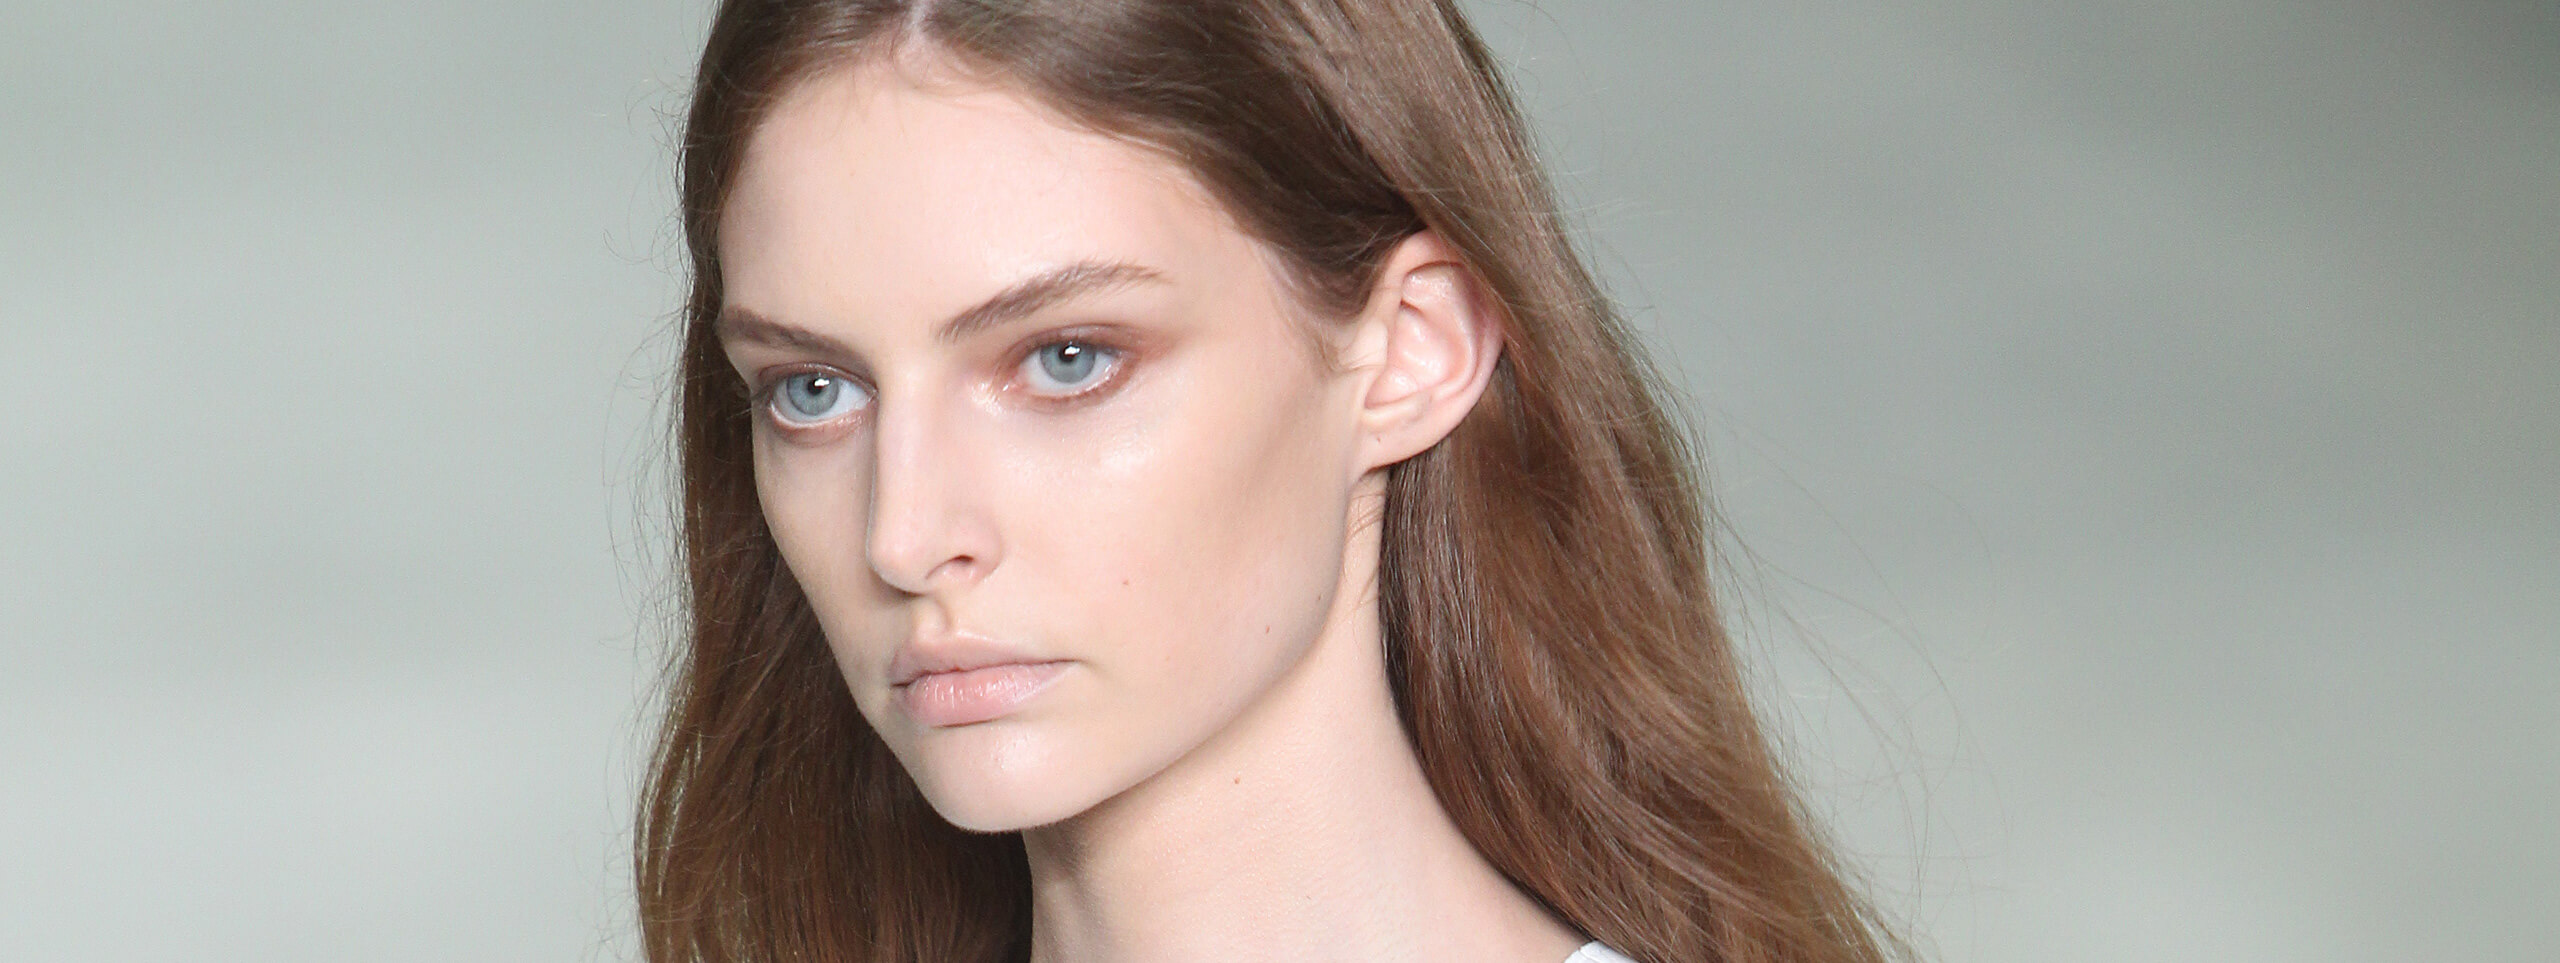 Model rocks cool brown hair color trend